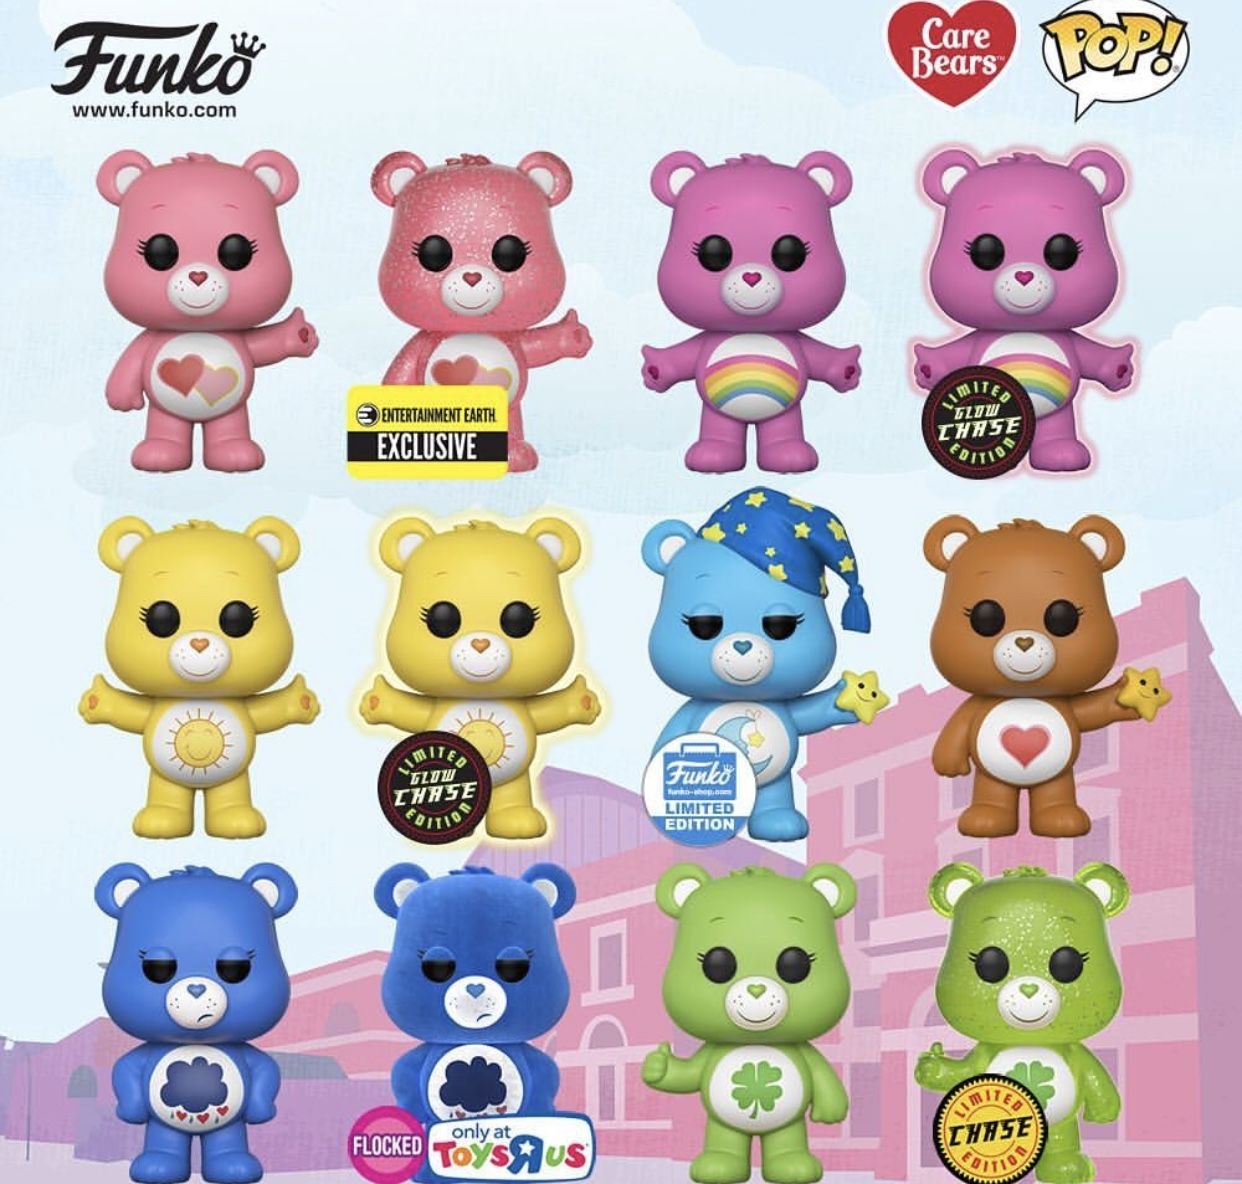 Funko Pop Vinyl Care Bears Coming Soon For The ️ Of